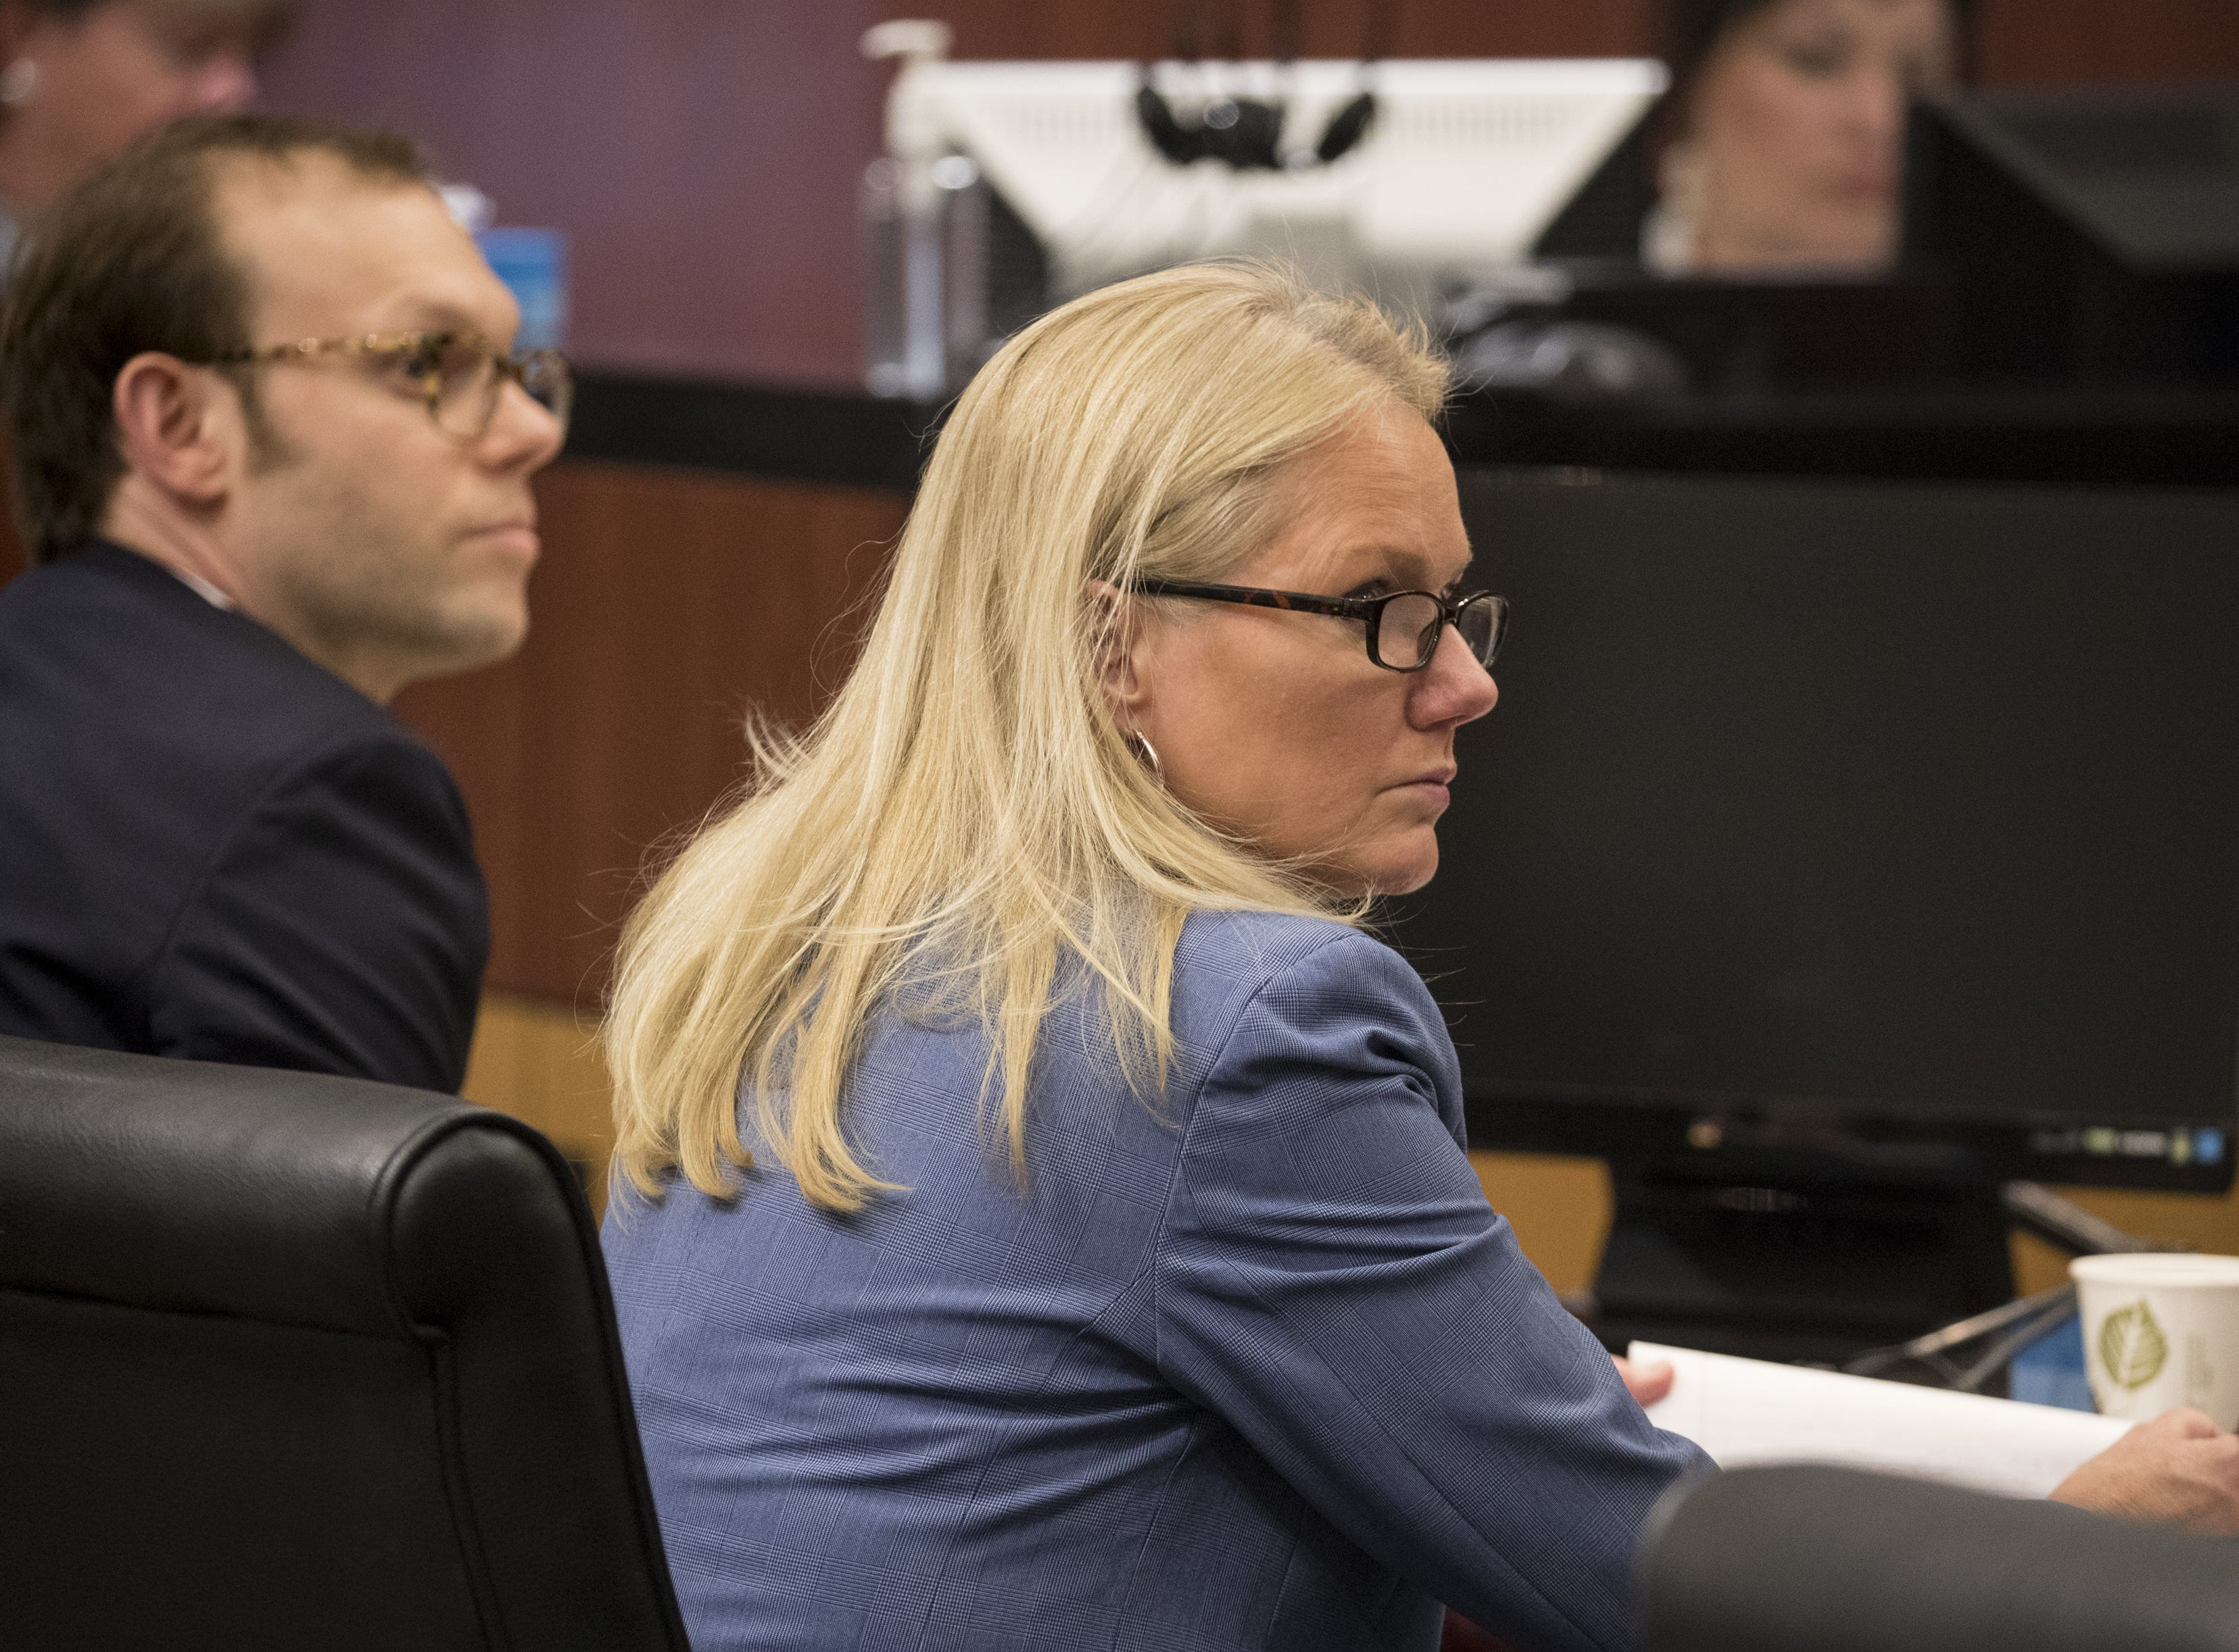 Colleen Connor, Deputy Maricopa County Attorney, during a hearing in Maricopa County Superior Judge Margaret Mahoney's courtroom in Phoenix on Nov. 9, 2018.